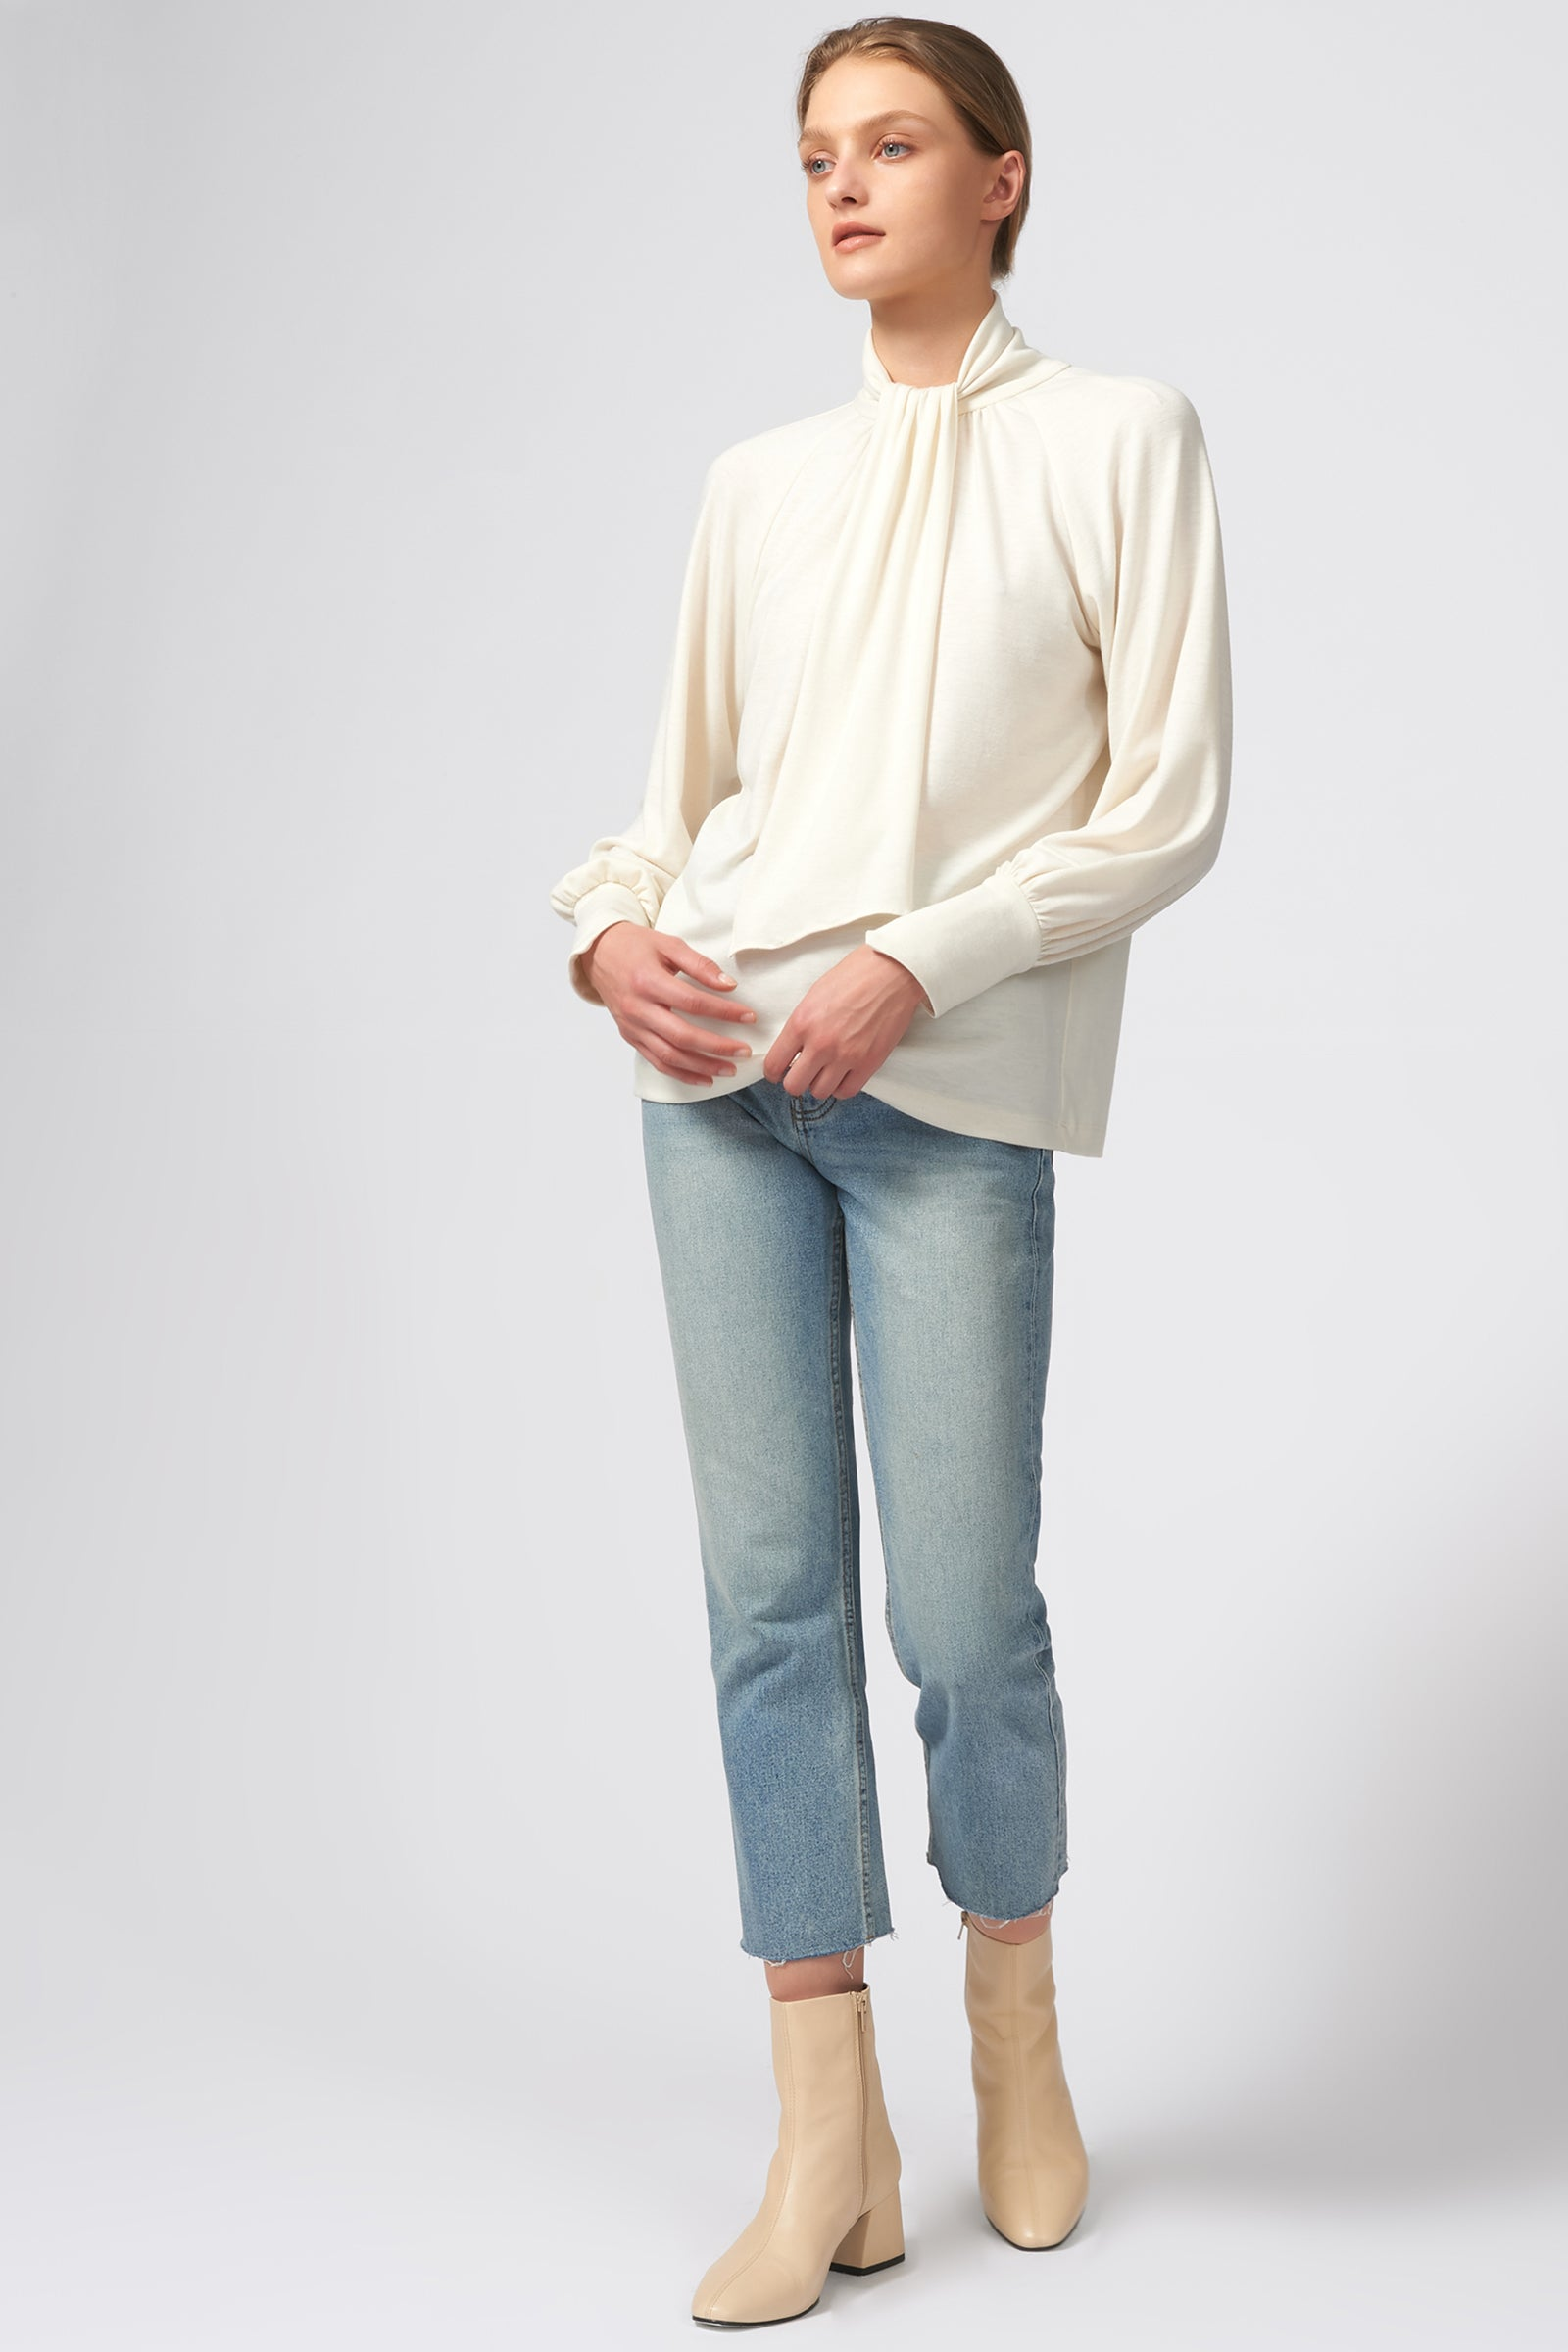 Kal Rieman Priestess Knit Blouse in Cream on Model Full Side View